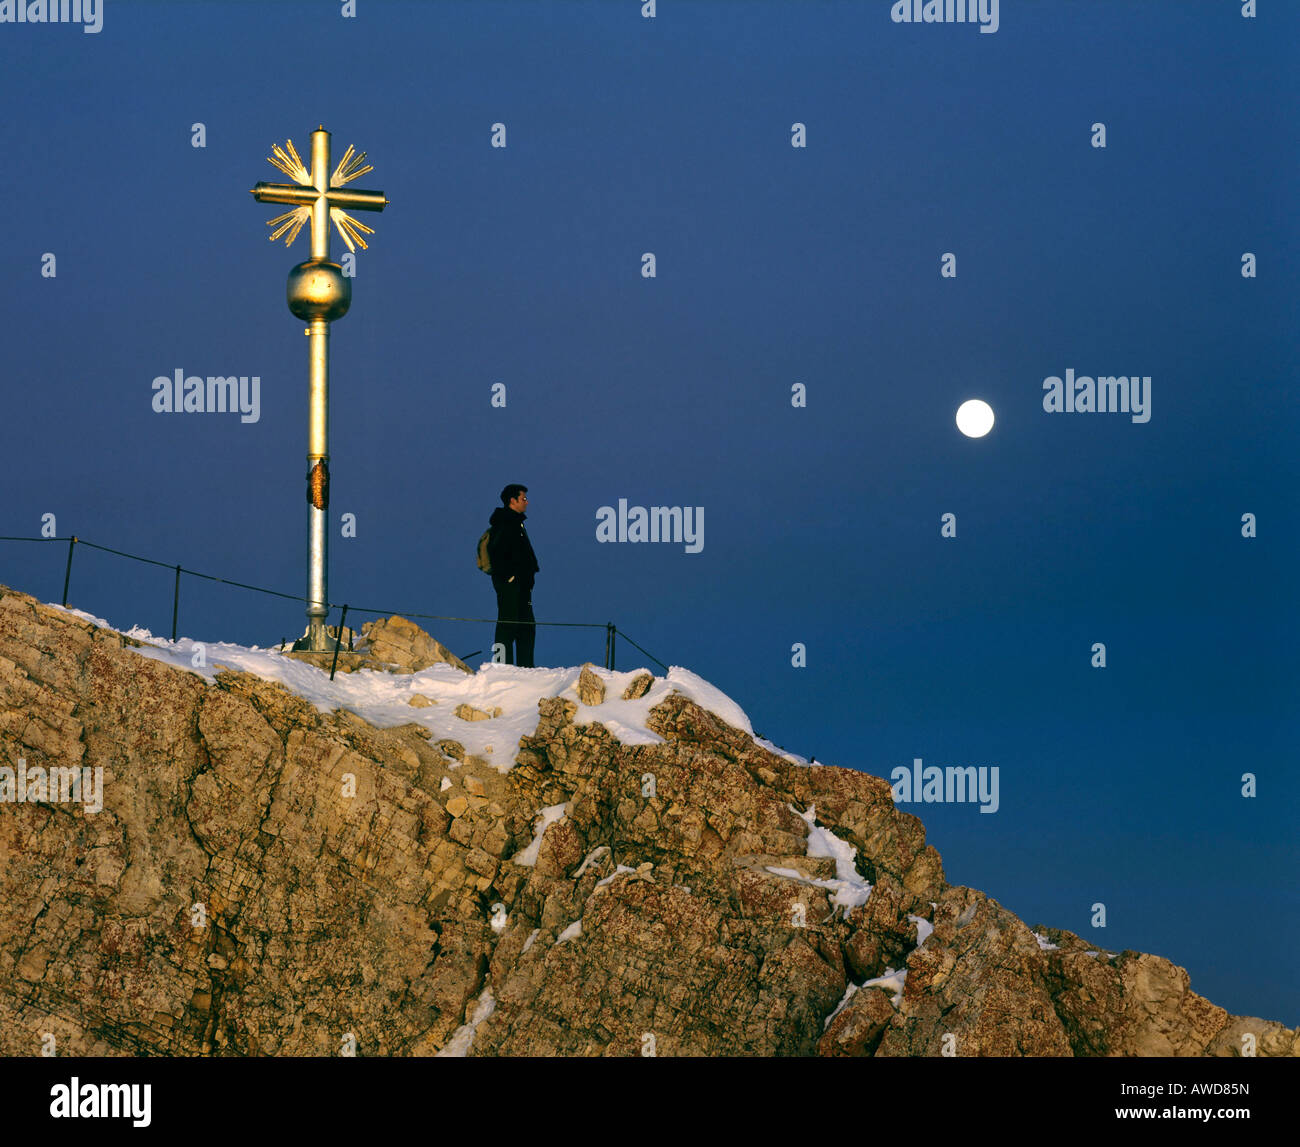 Summit cross at 2962 m or 9718 ft on the Zugspitze, Germany's highest mountain, at dusk, Wetterstein Range, - Stock Image